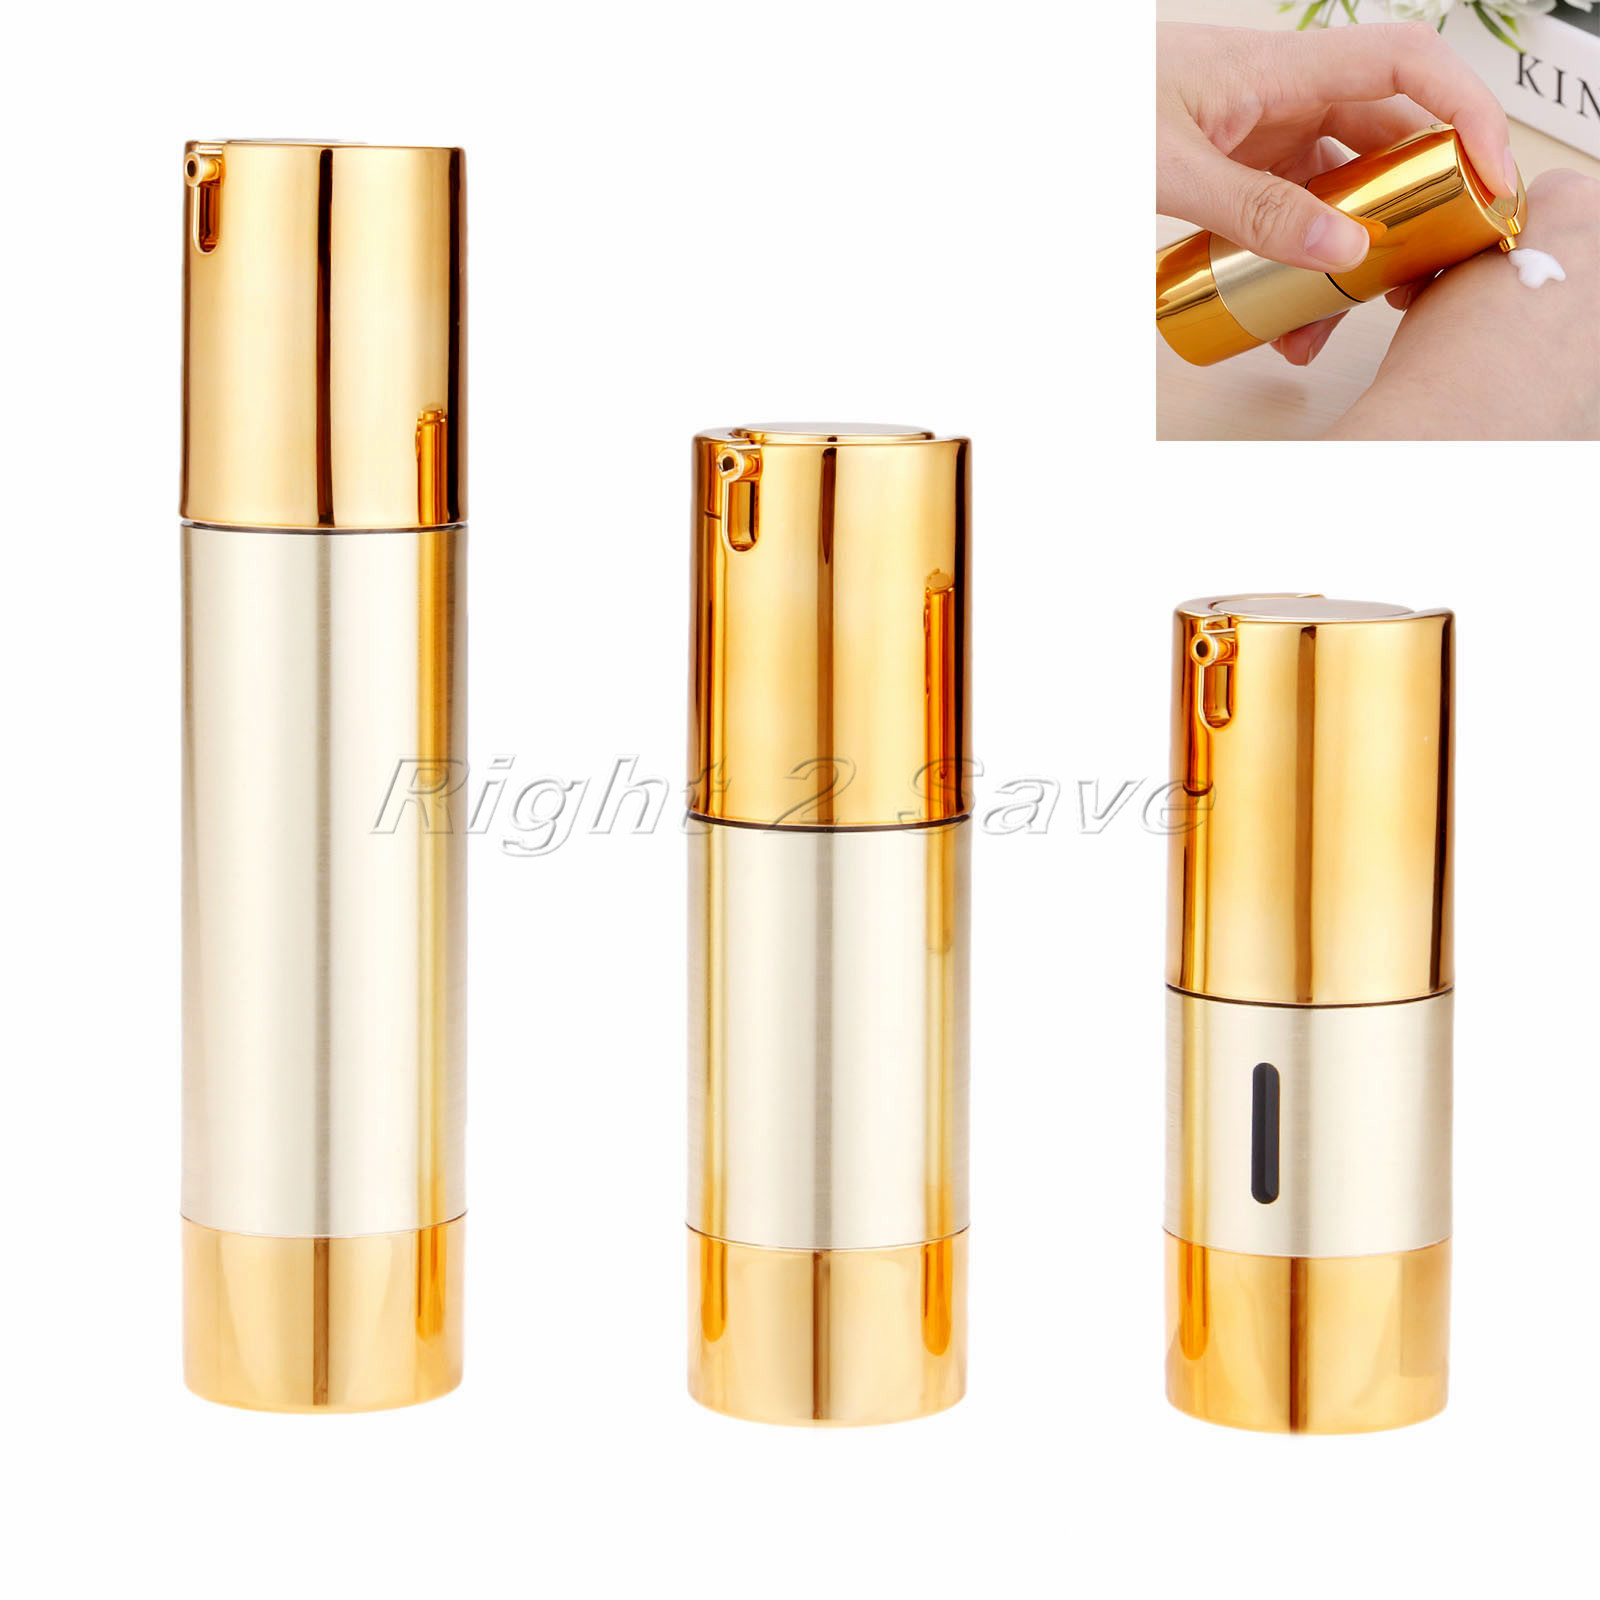 Gold Vacuum Bottle Pump Airless Luxury Portable Cosmetic Lotion Treatment Travel Empty Bottle Container 15ml/30ml/50ml